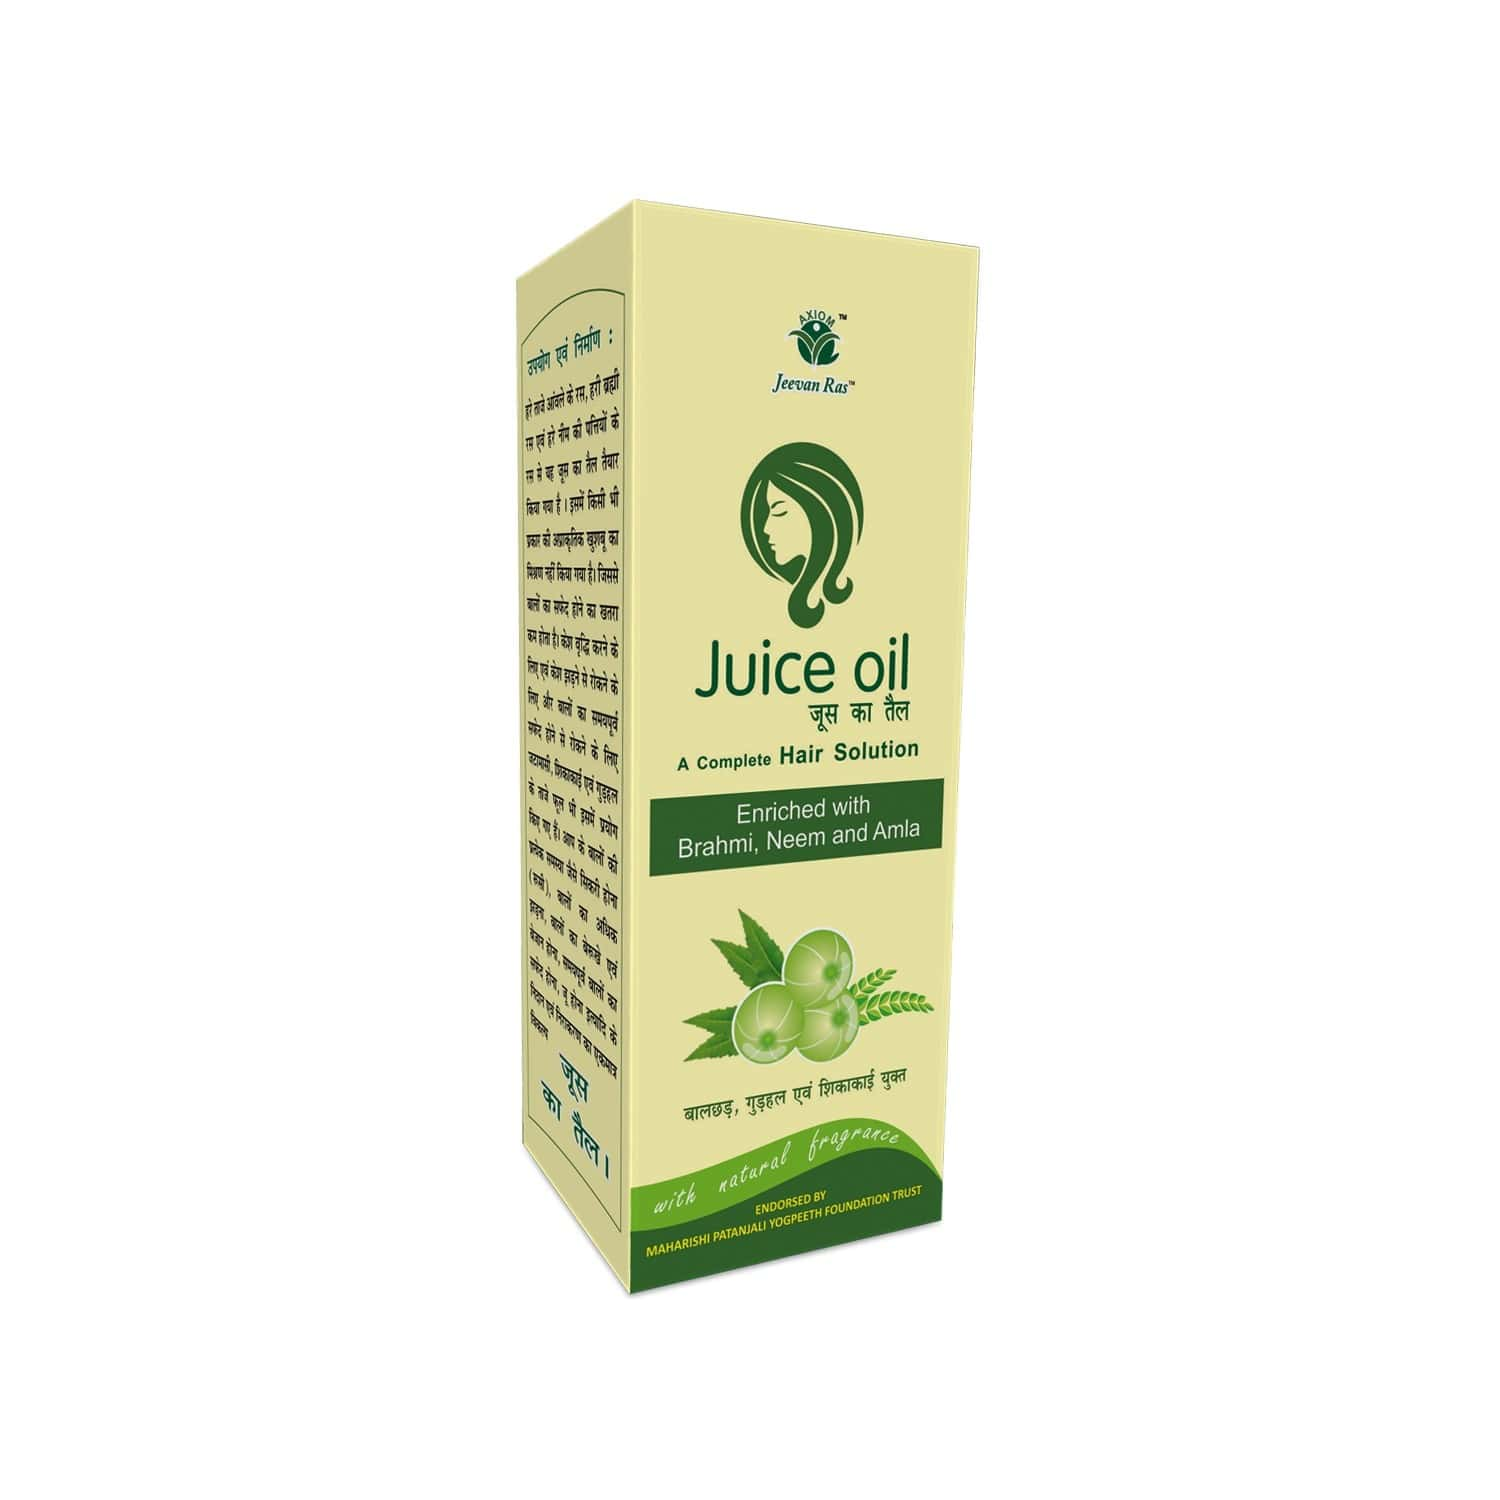 Axiom Jeevan Ras Juice Oil - 200ml ( Pack Of 2)